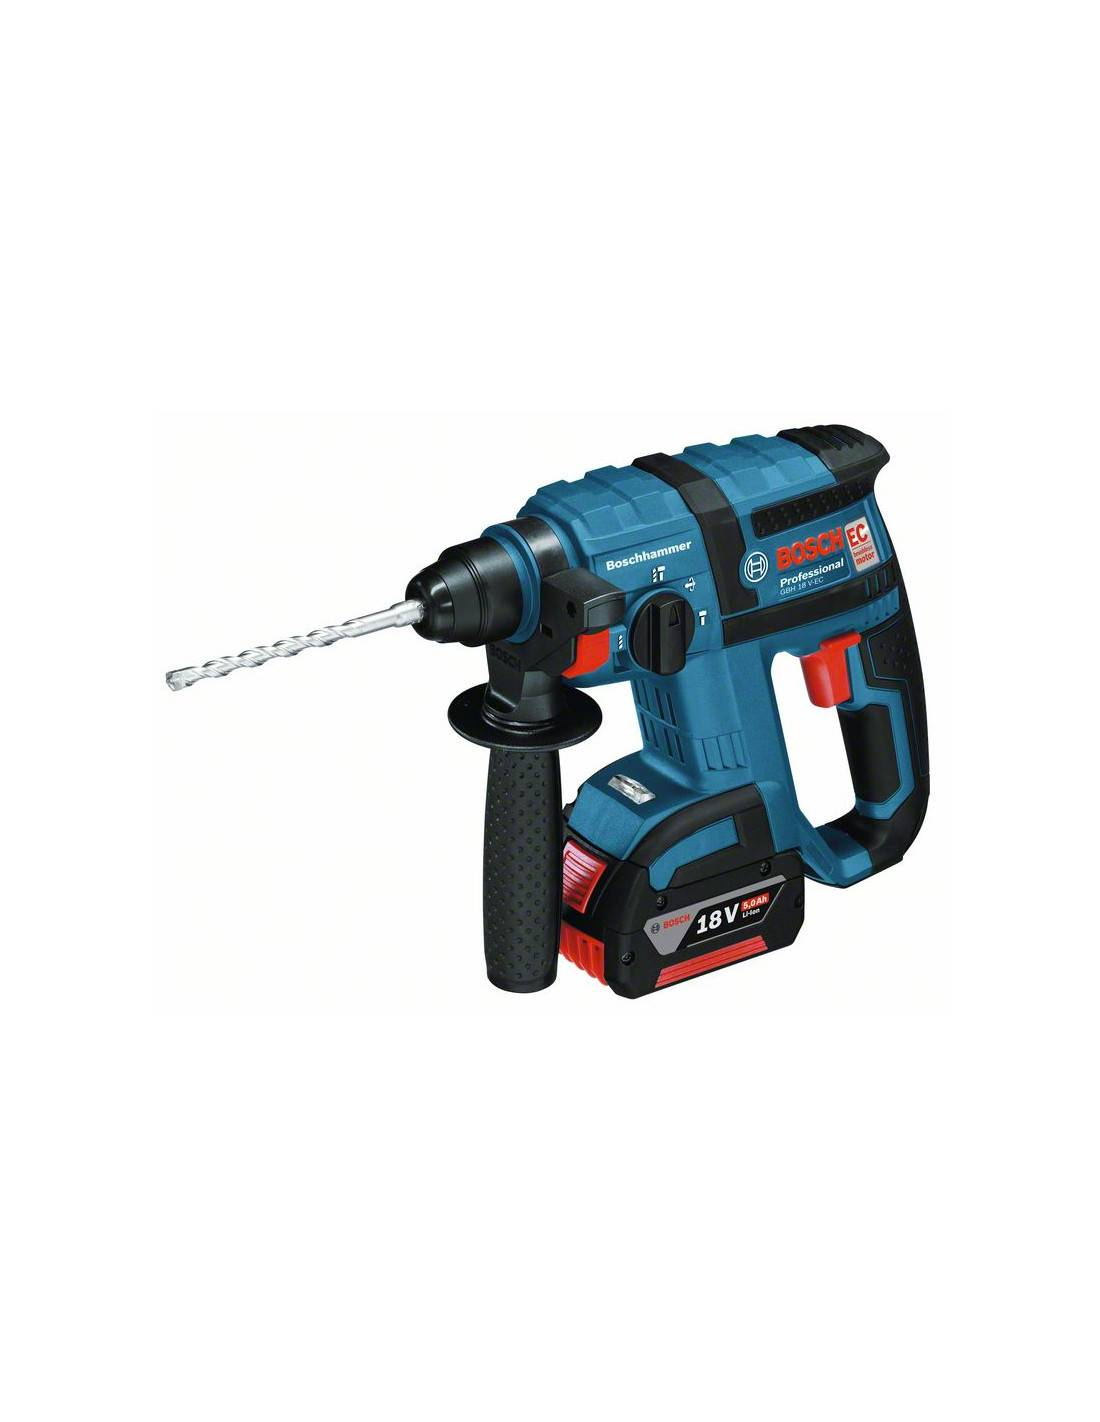 BOSCH - Perforateur SDS+ GBH 18 V-EC (machine seule) en coffret L-BOXX - 0611904003